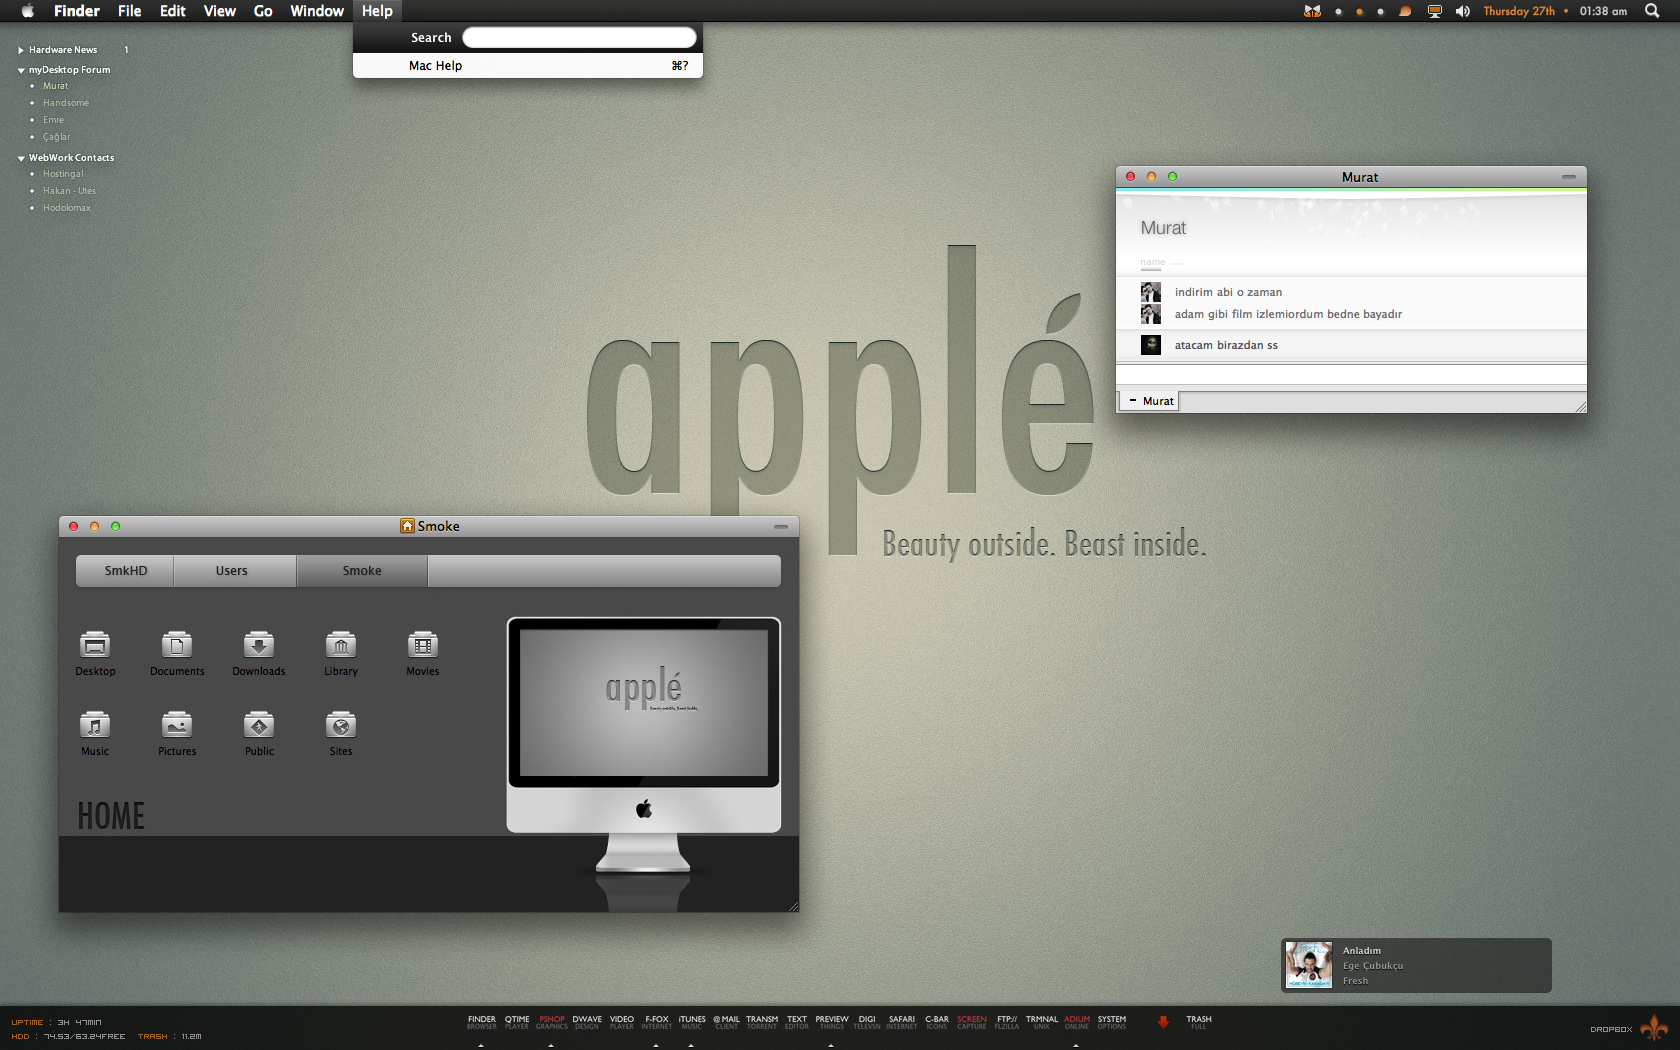 AppleBeast by neodesktop